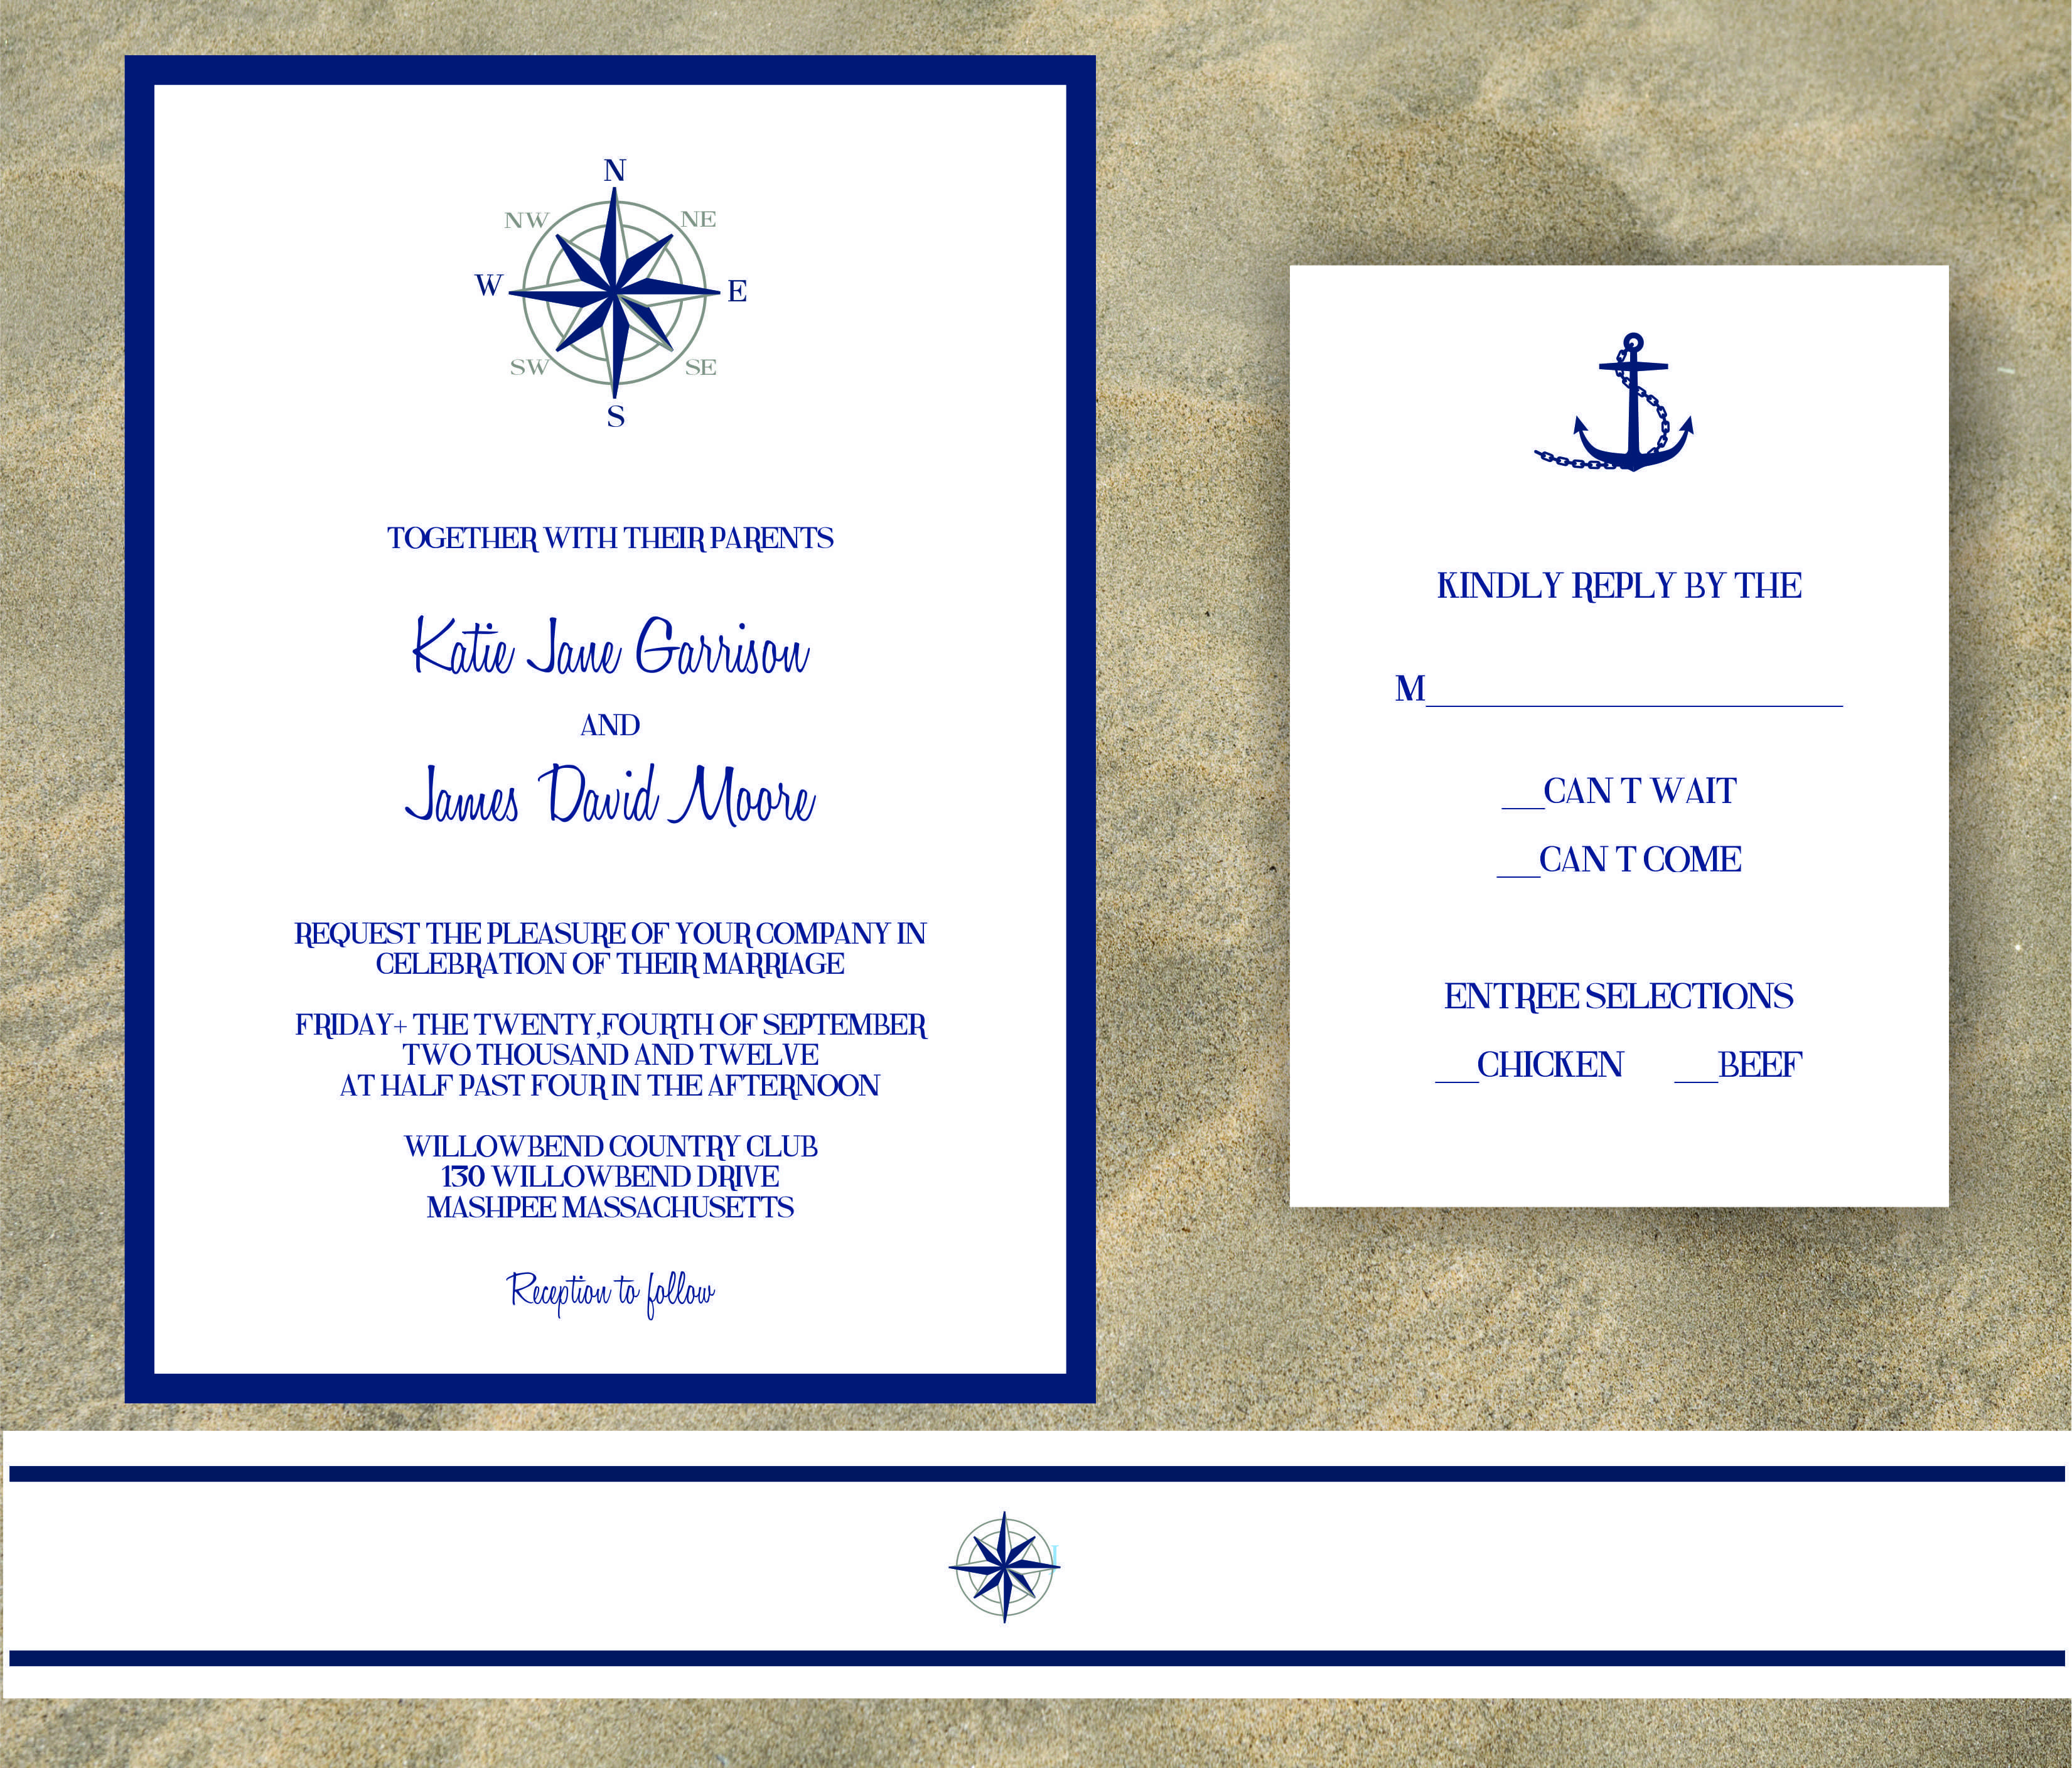 nautical wedding invitations with compass rose | Dulce Press ...